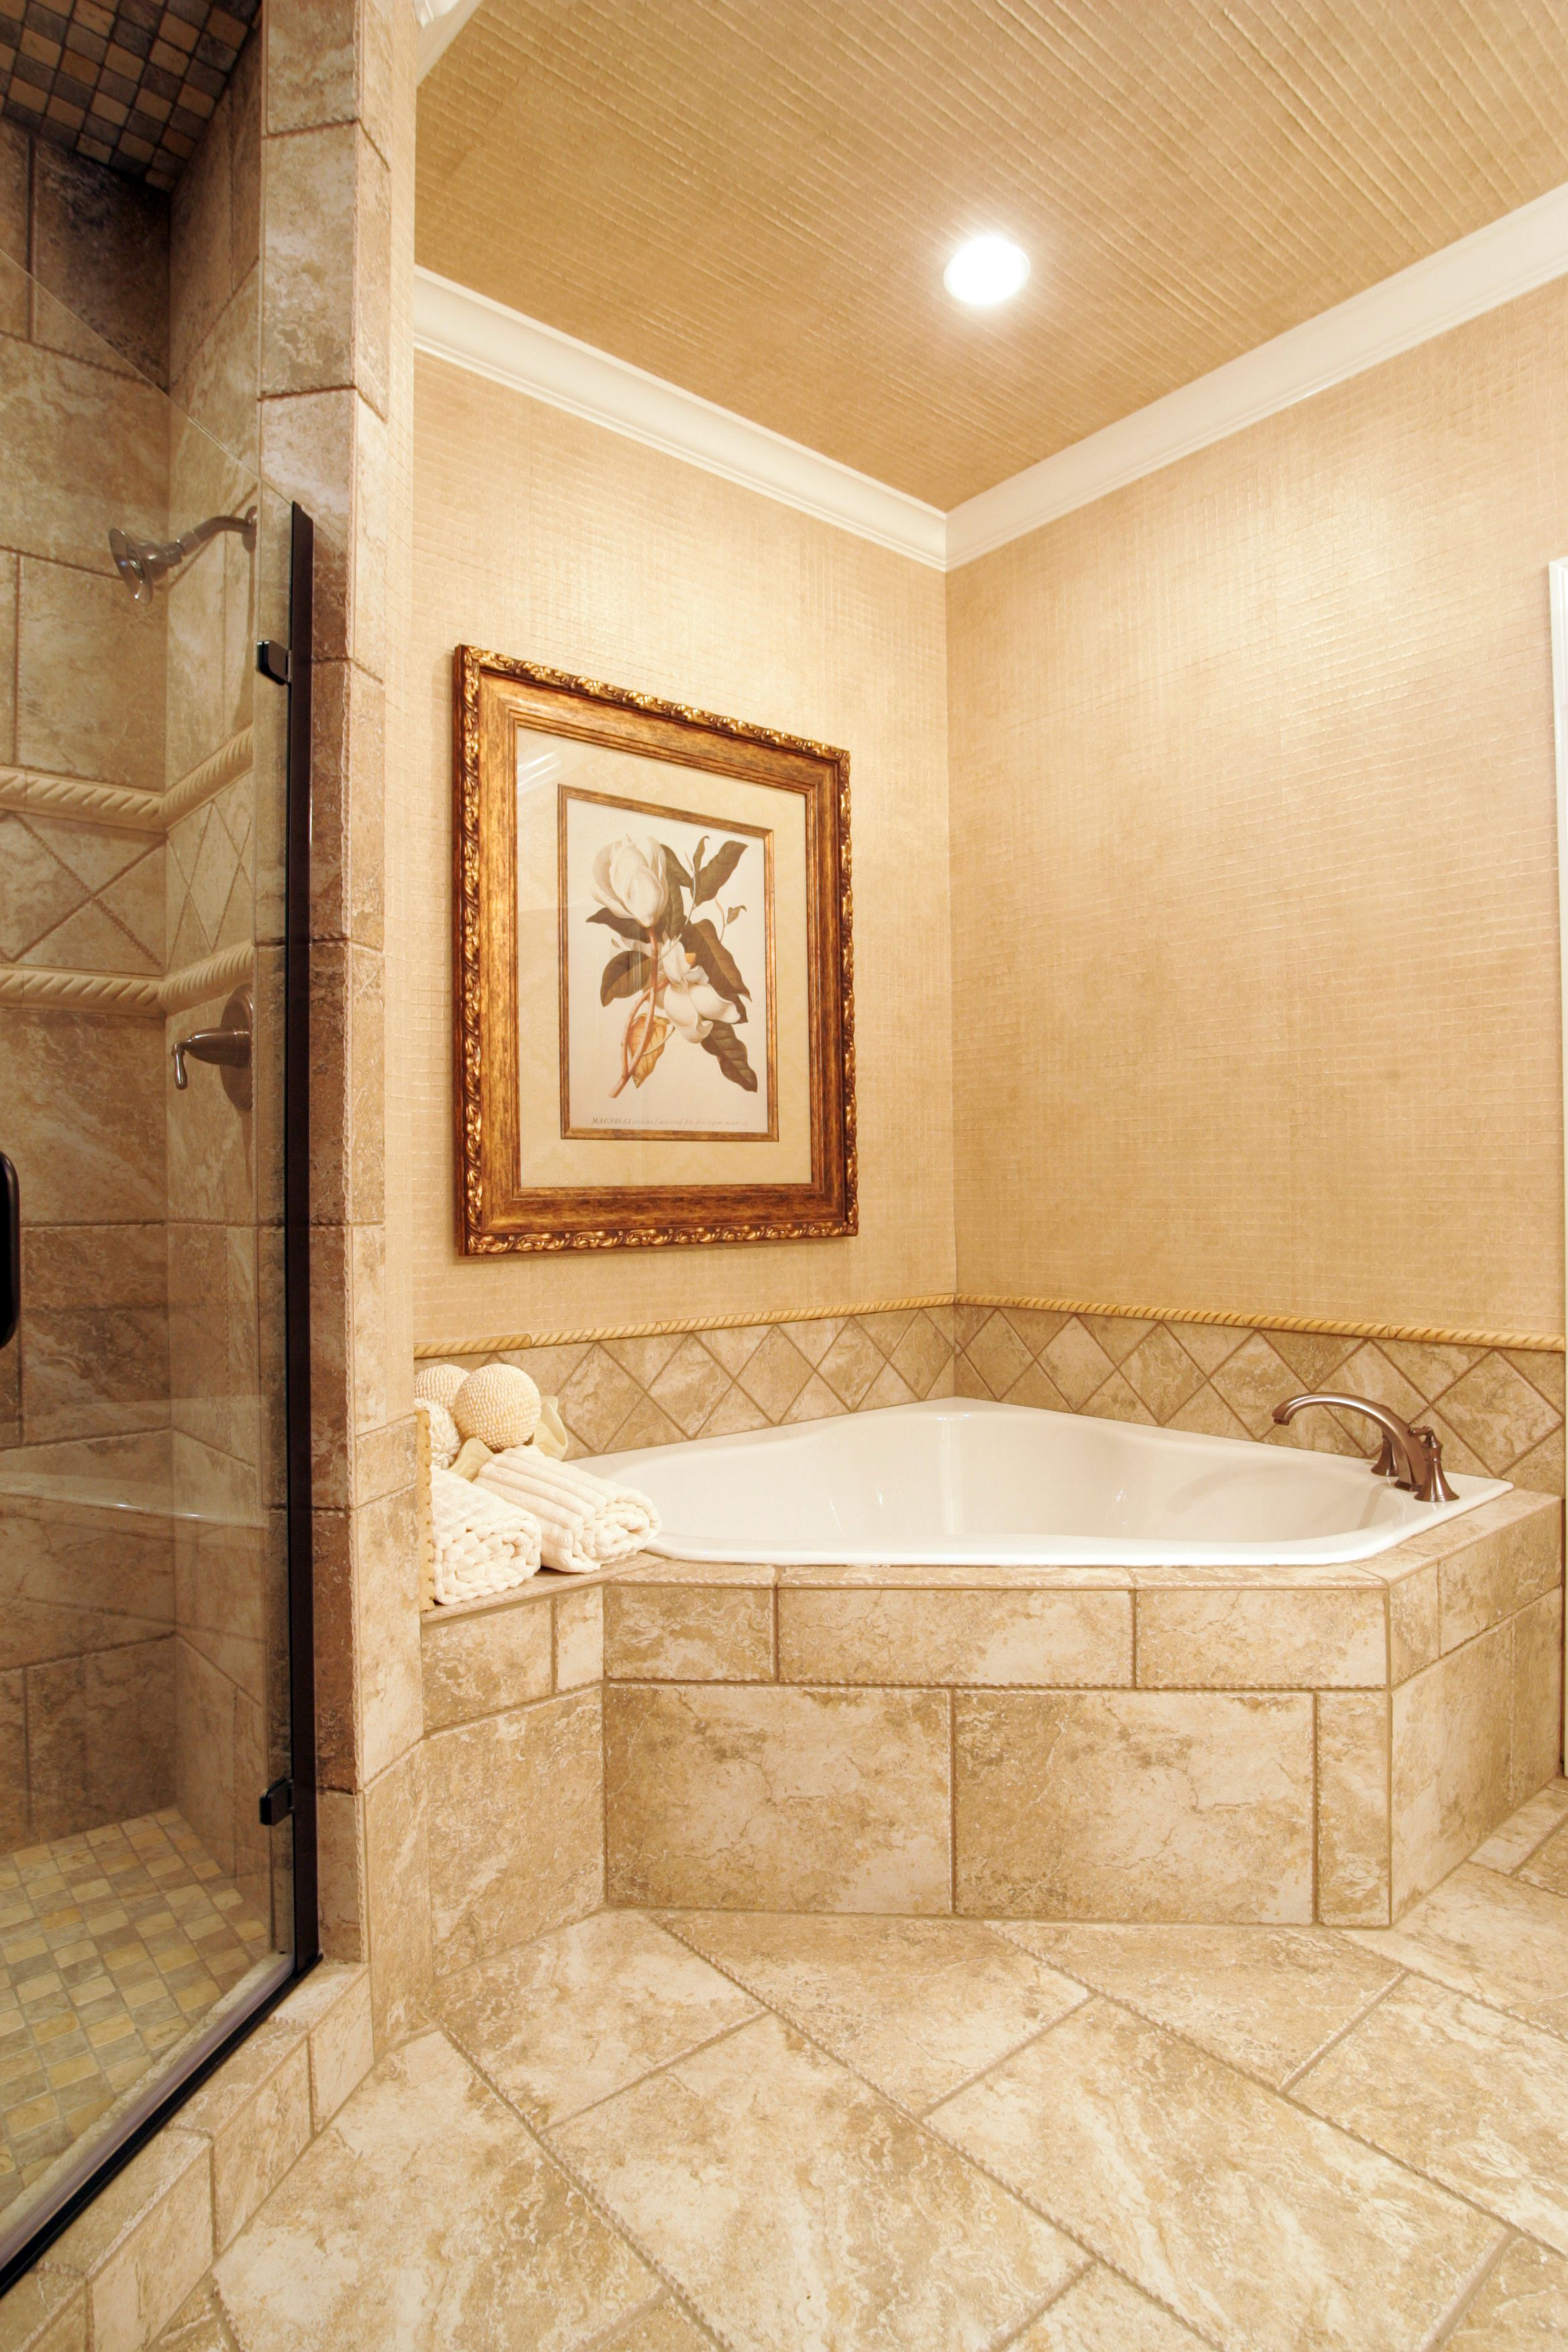 Corner Soaking Tub With Tile Surround In 2019 Corner